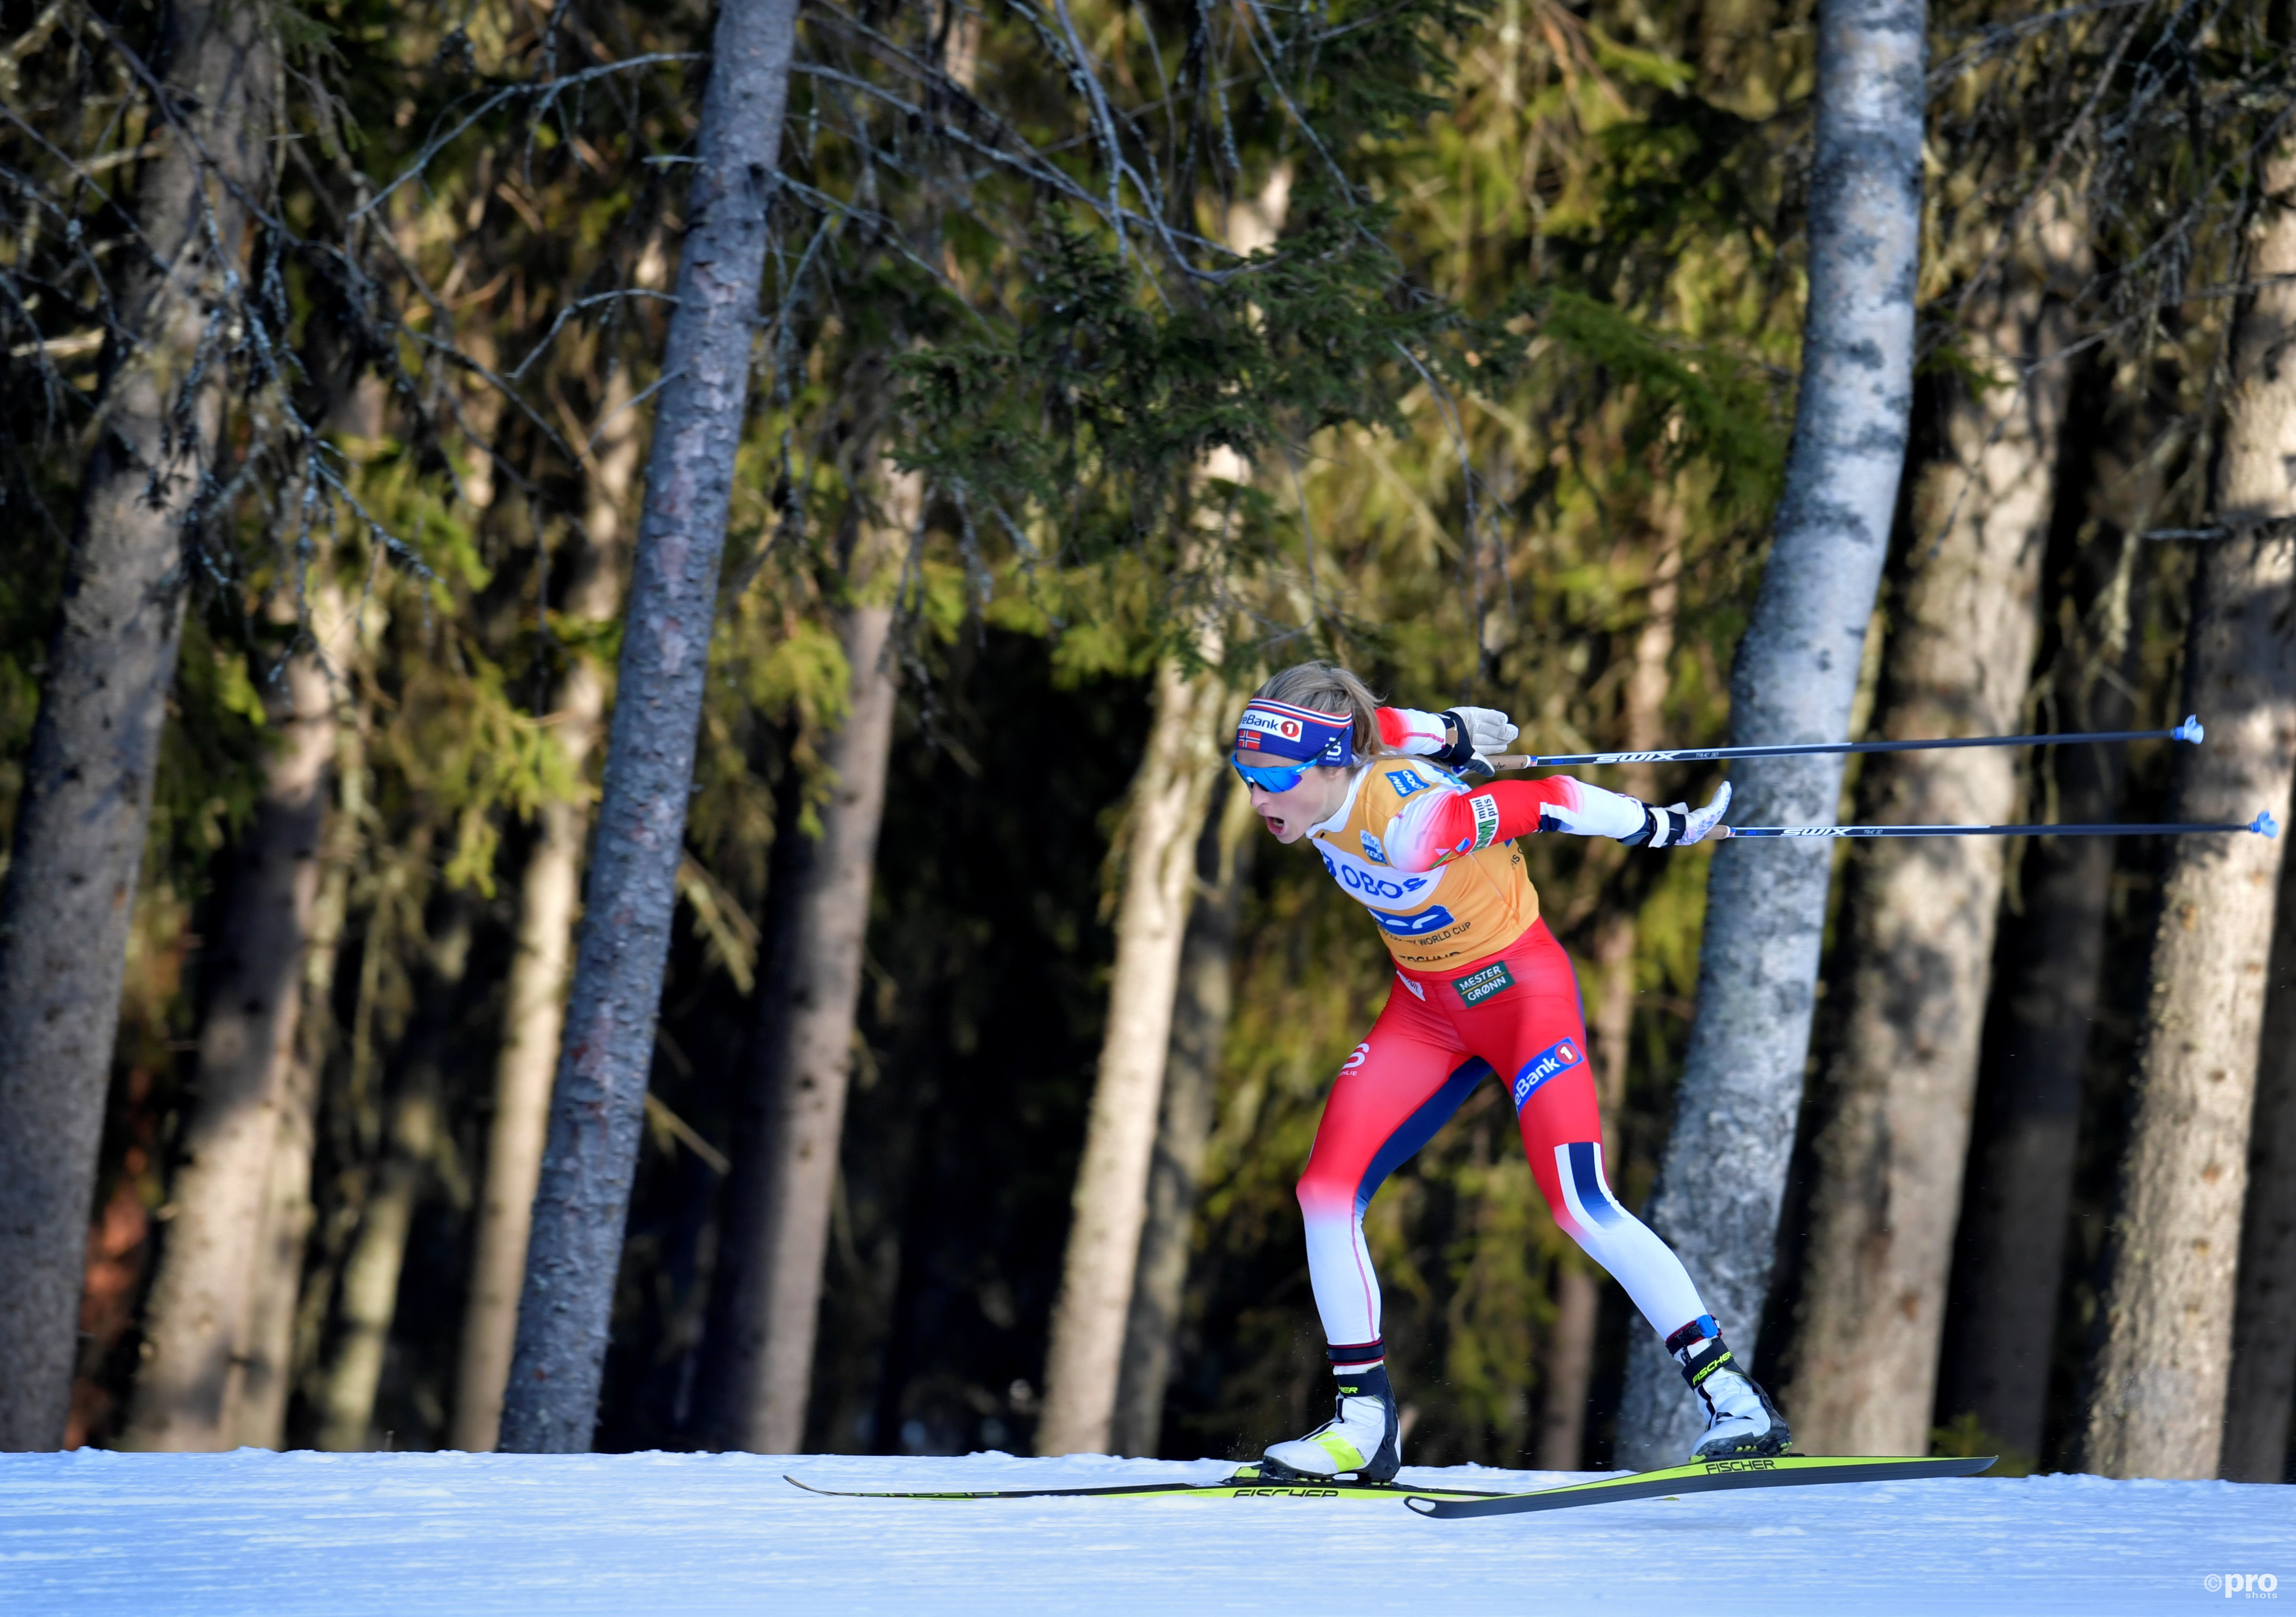 Therese Johaug wint weer eens (Pro Shots/Action Images)